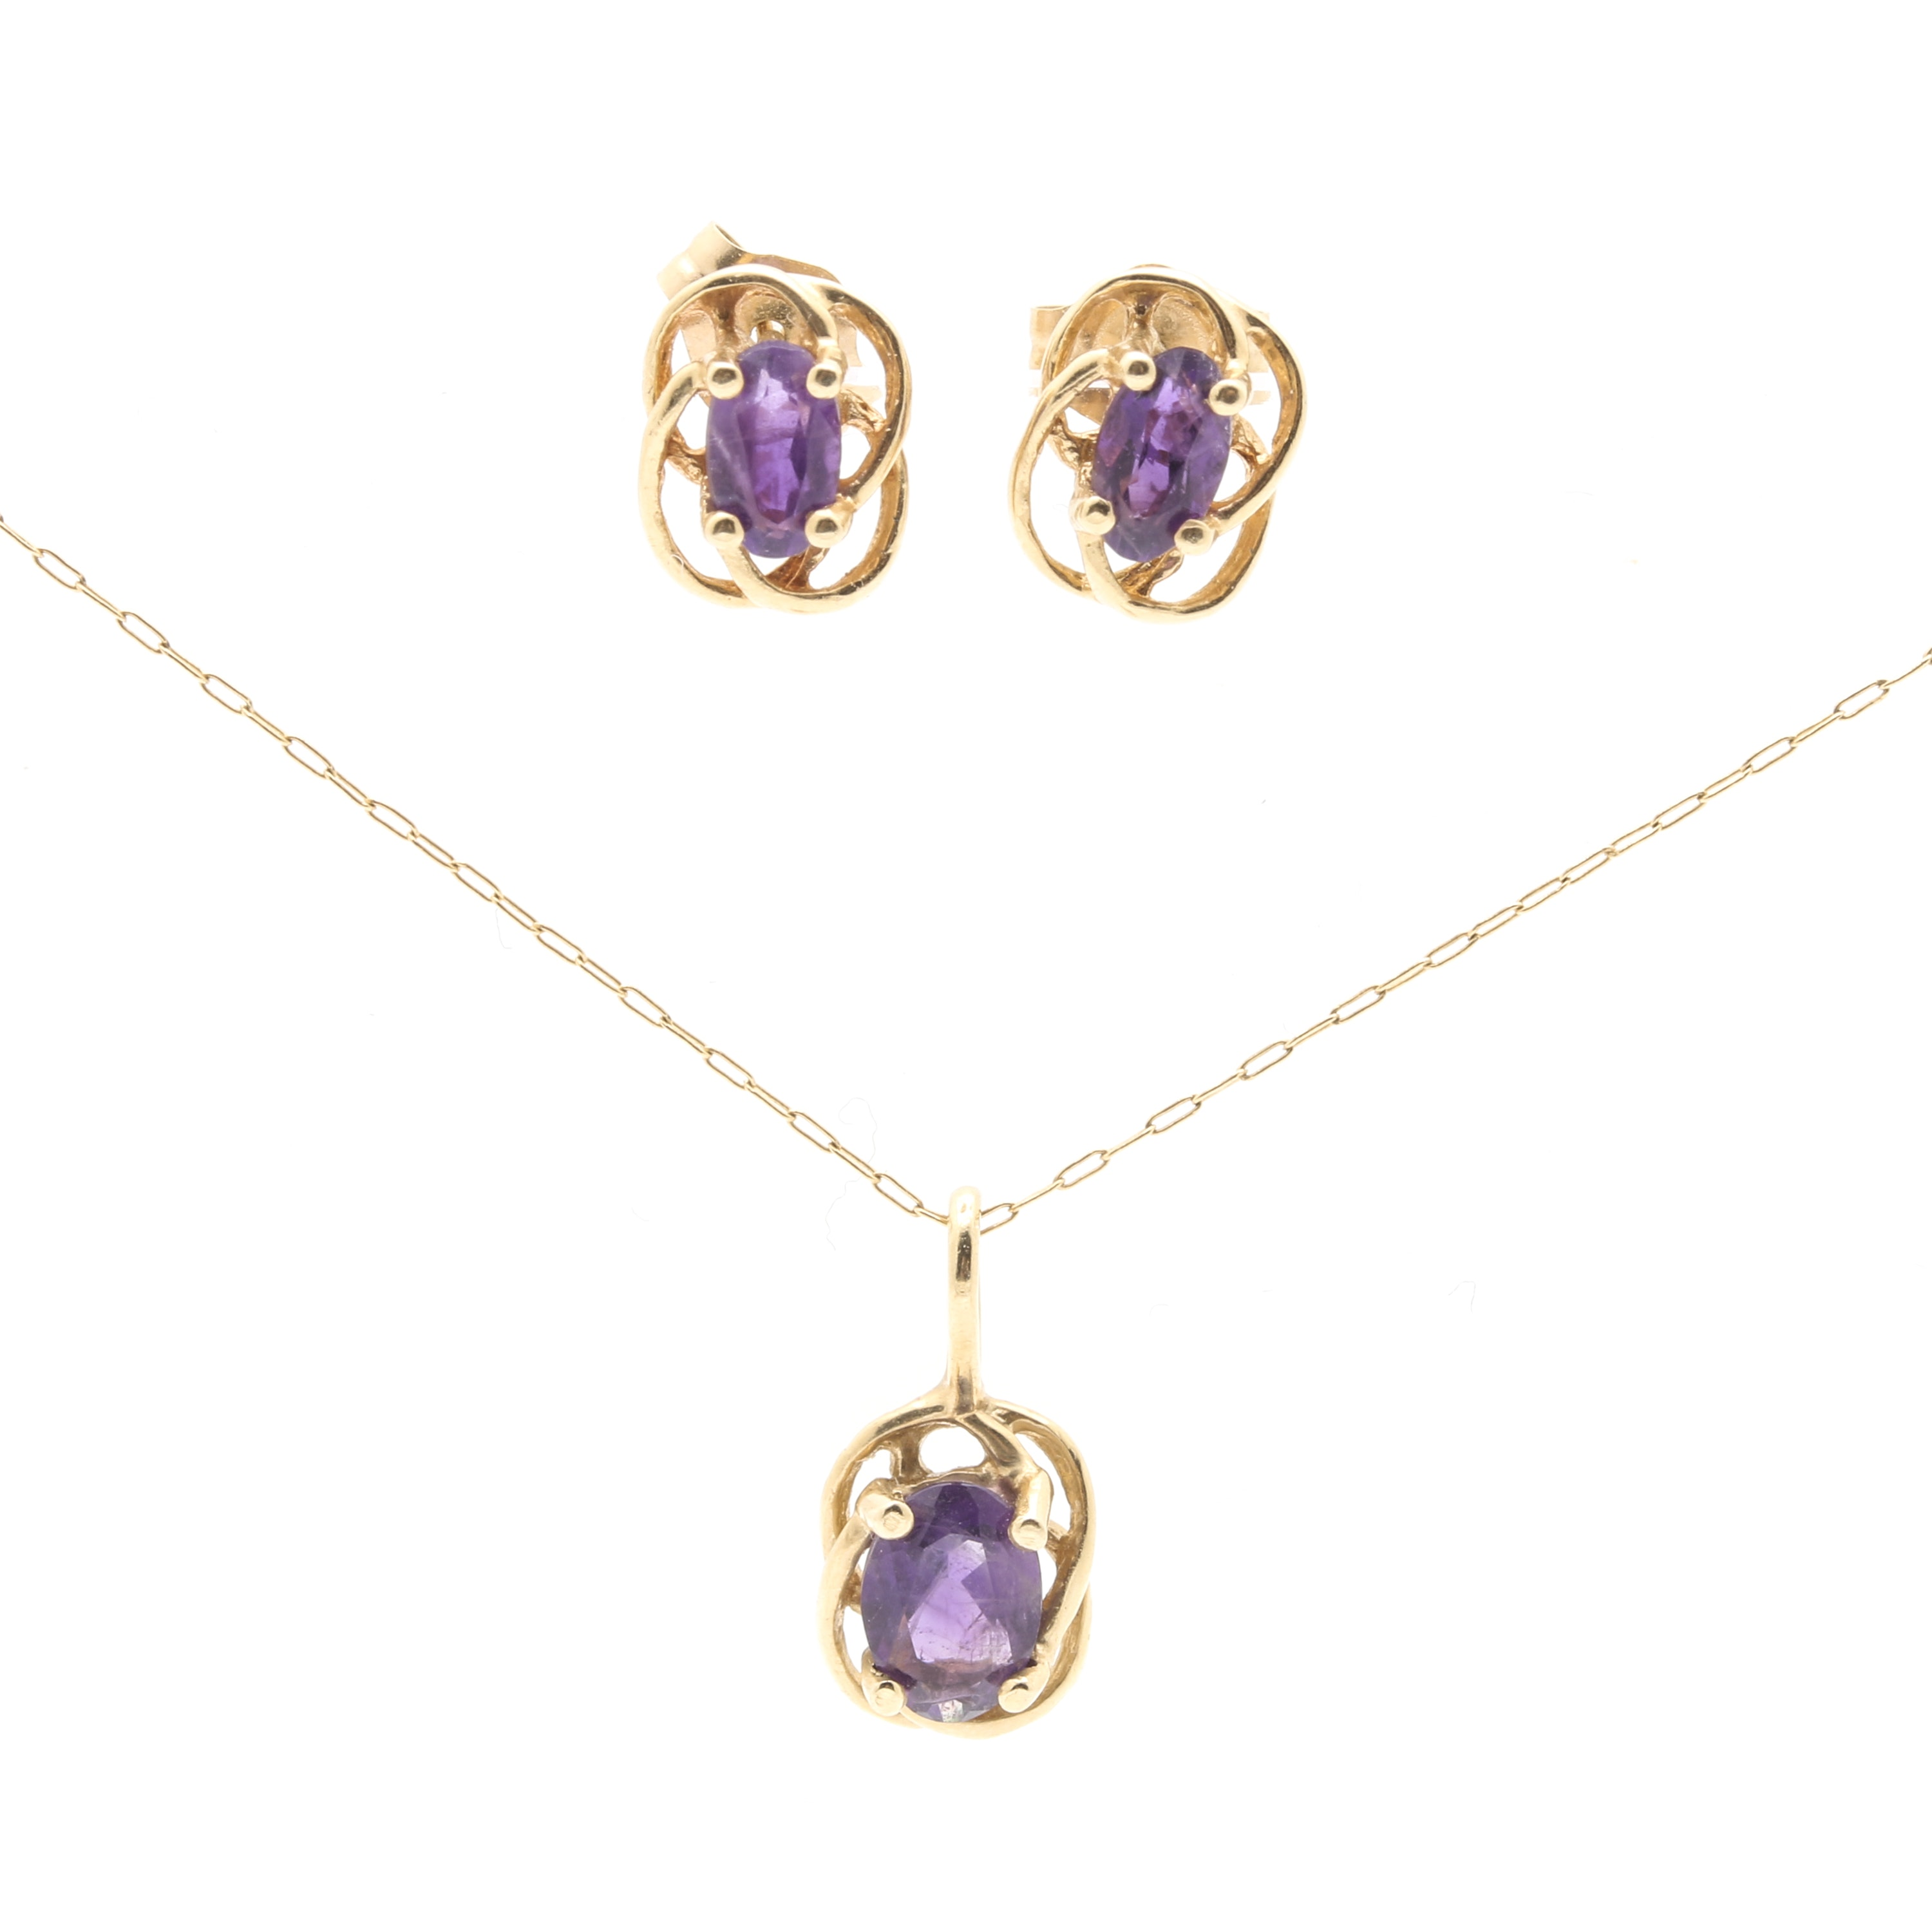 14K Yellow Gold Amethyst Pendant Necklace and Earrings